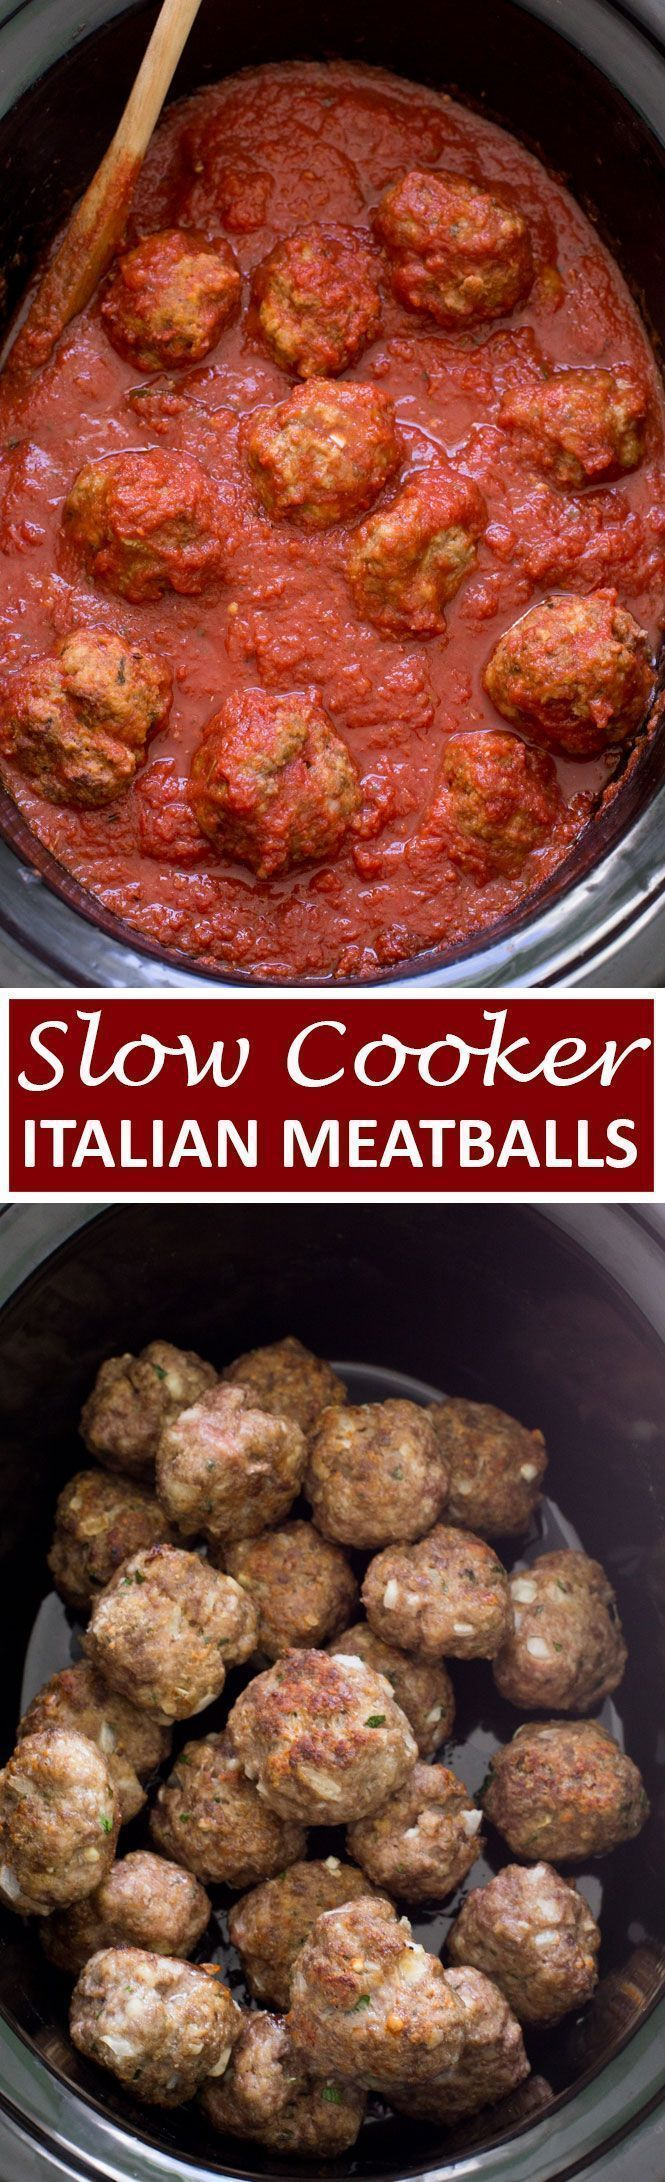 Super Tender Slow Cooker Italian Meatballs. Loaded with Parmesan cheese, fresh parsley and garlic. They melt in your mouth and are incredibly tender. Simmered low and slow for 4 hours! | chefsavvy.com